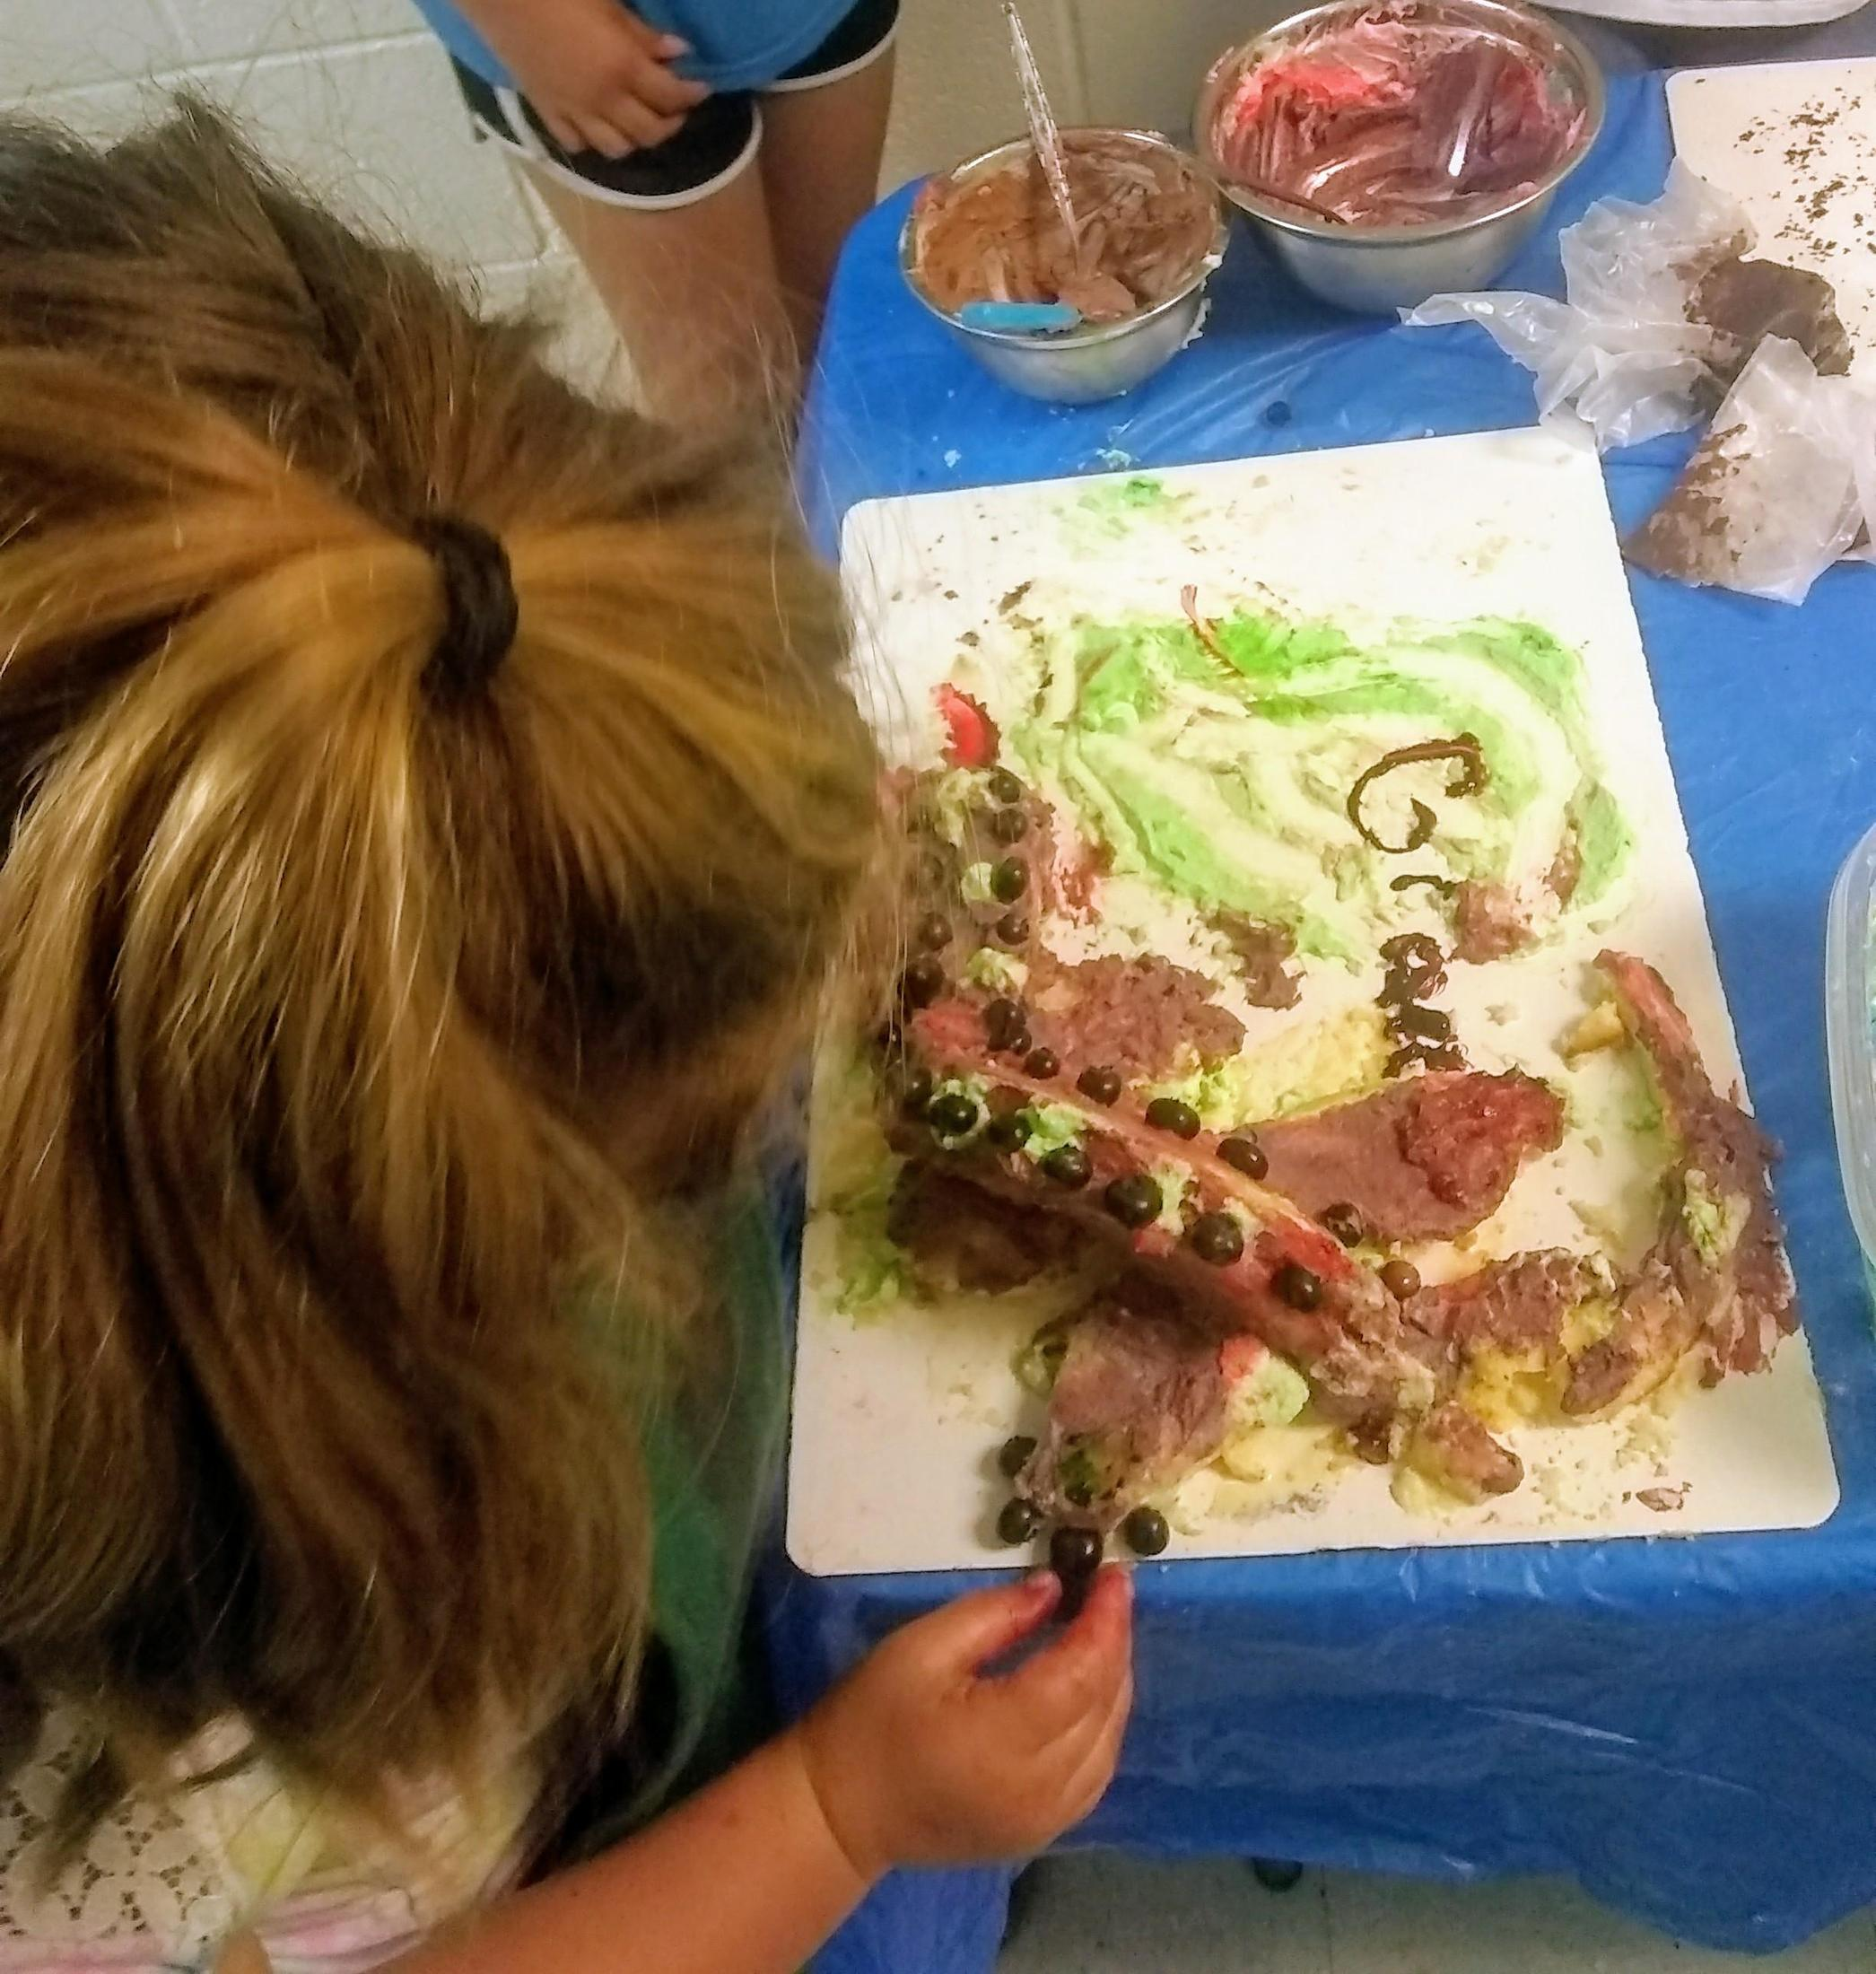 kids decorating cakes in animal shapes